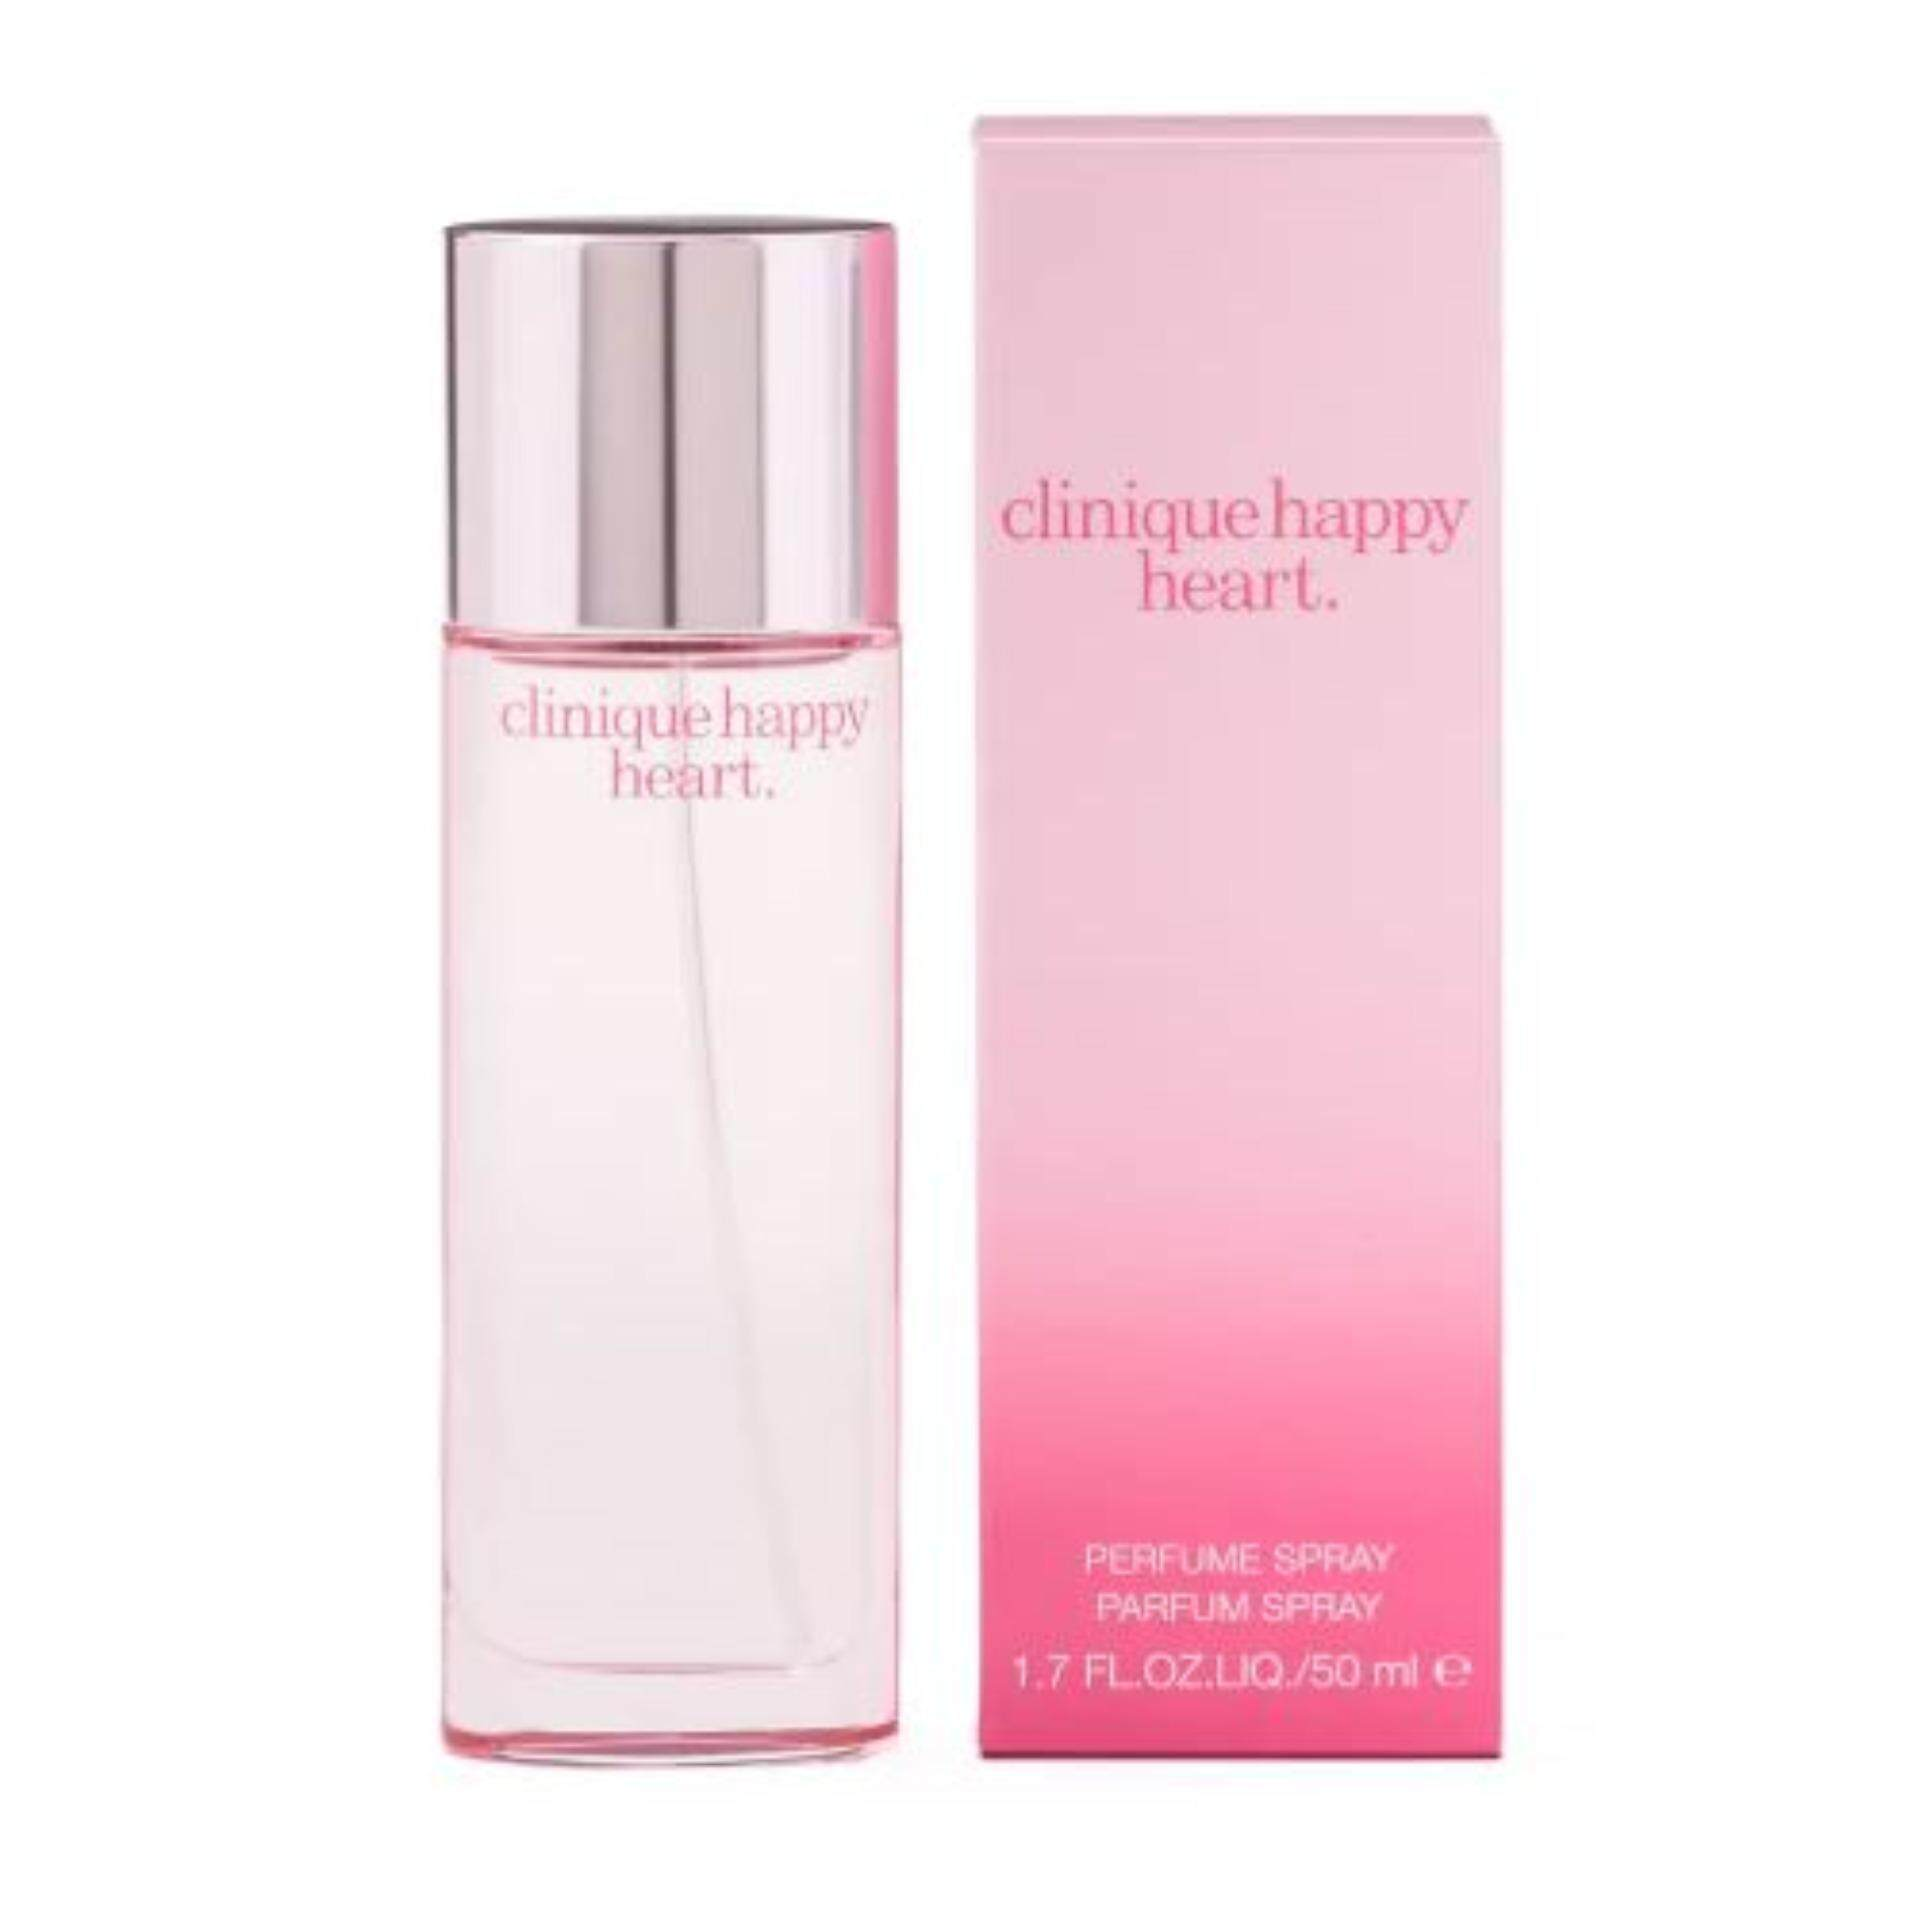 Clinique Happy Heart Eau De Parfum 50ml.